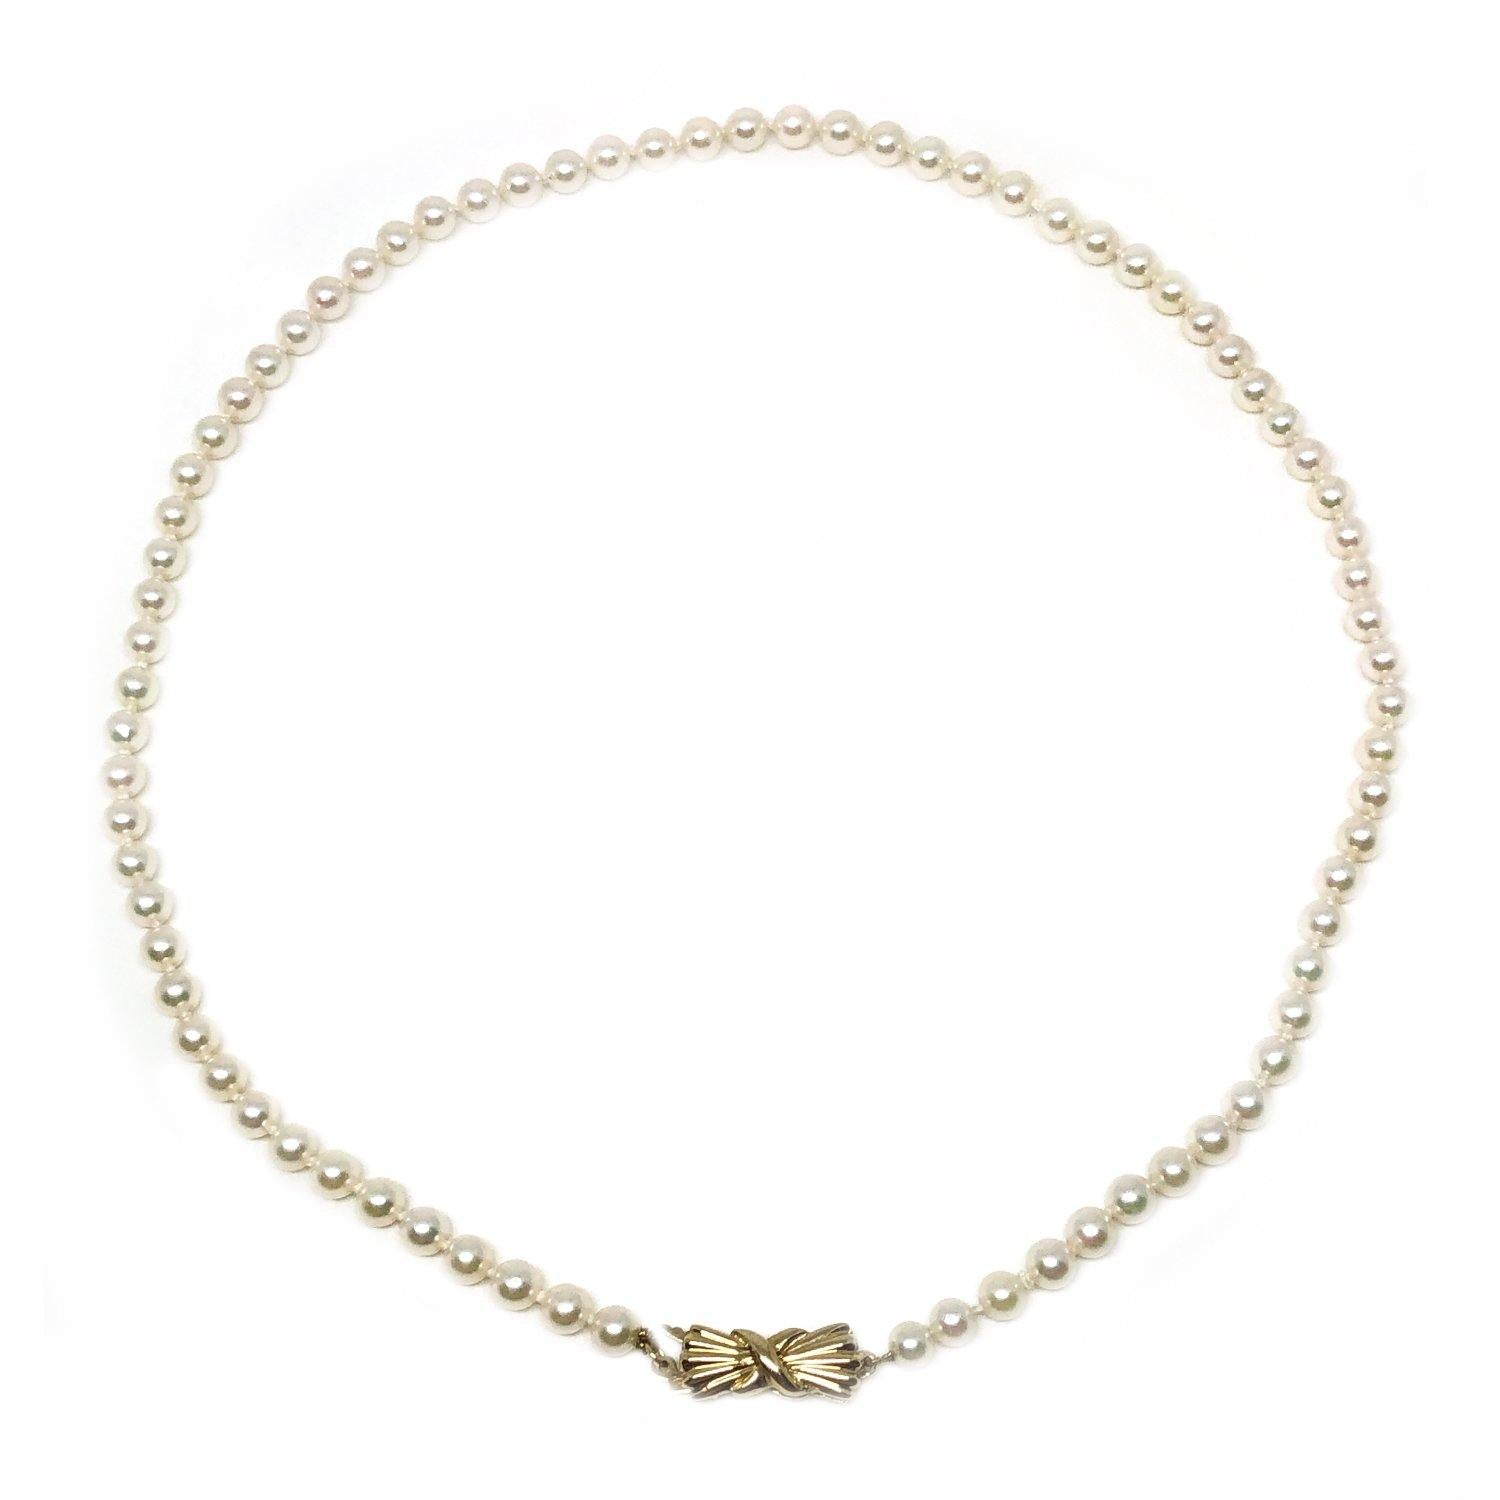 Petite Bow Japanese Saltwater Cultured Akoya Pearl Strand - 14K Yellow Gold 16.50 Inch